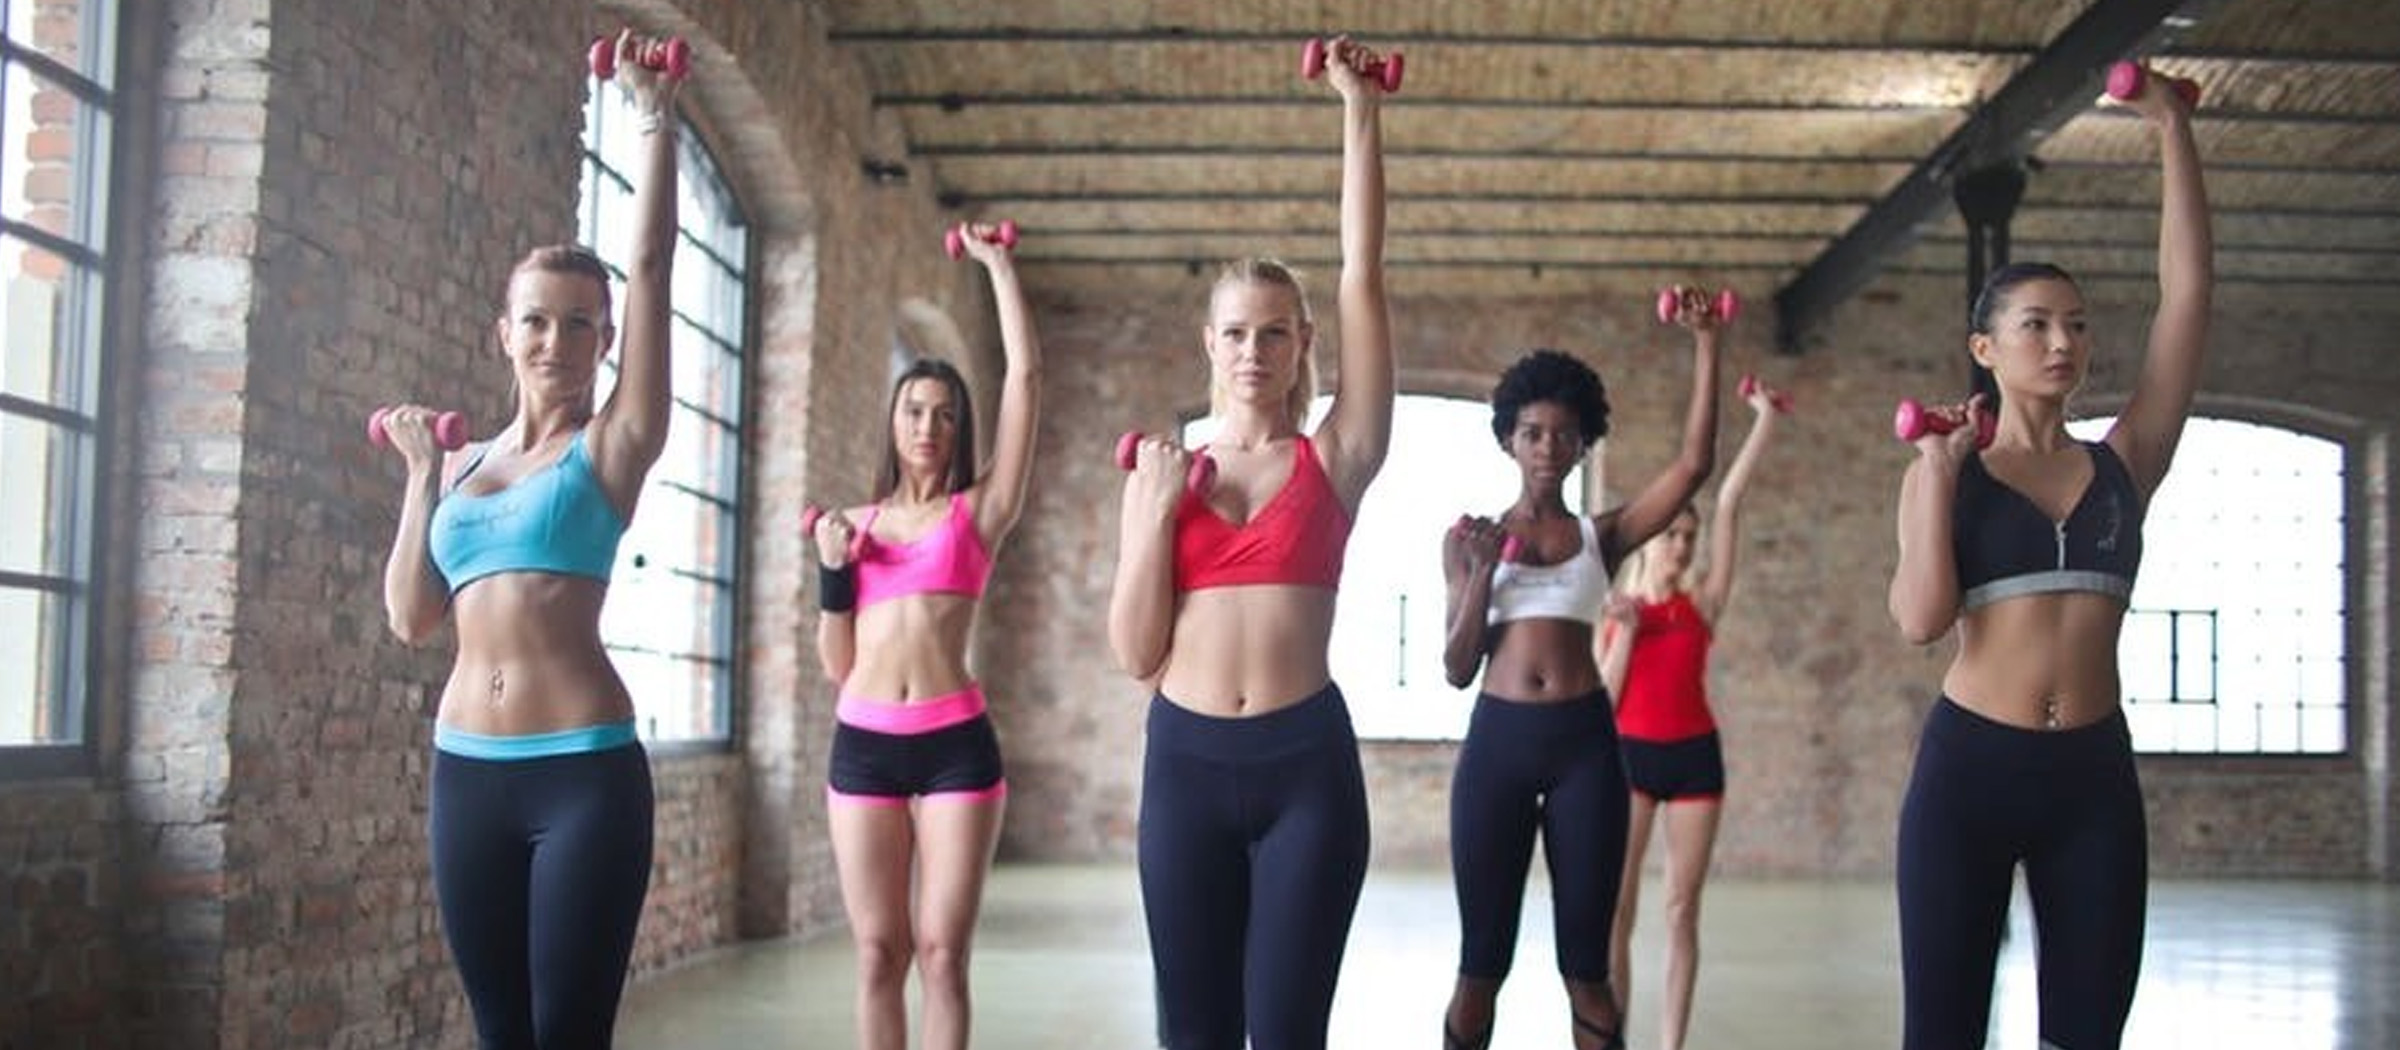 Image of women exercising